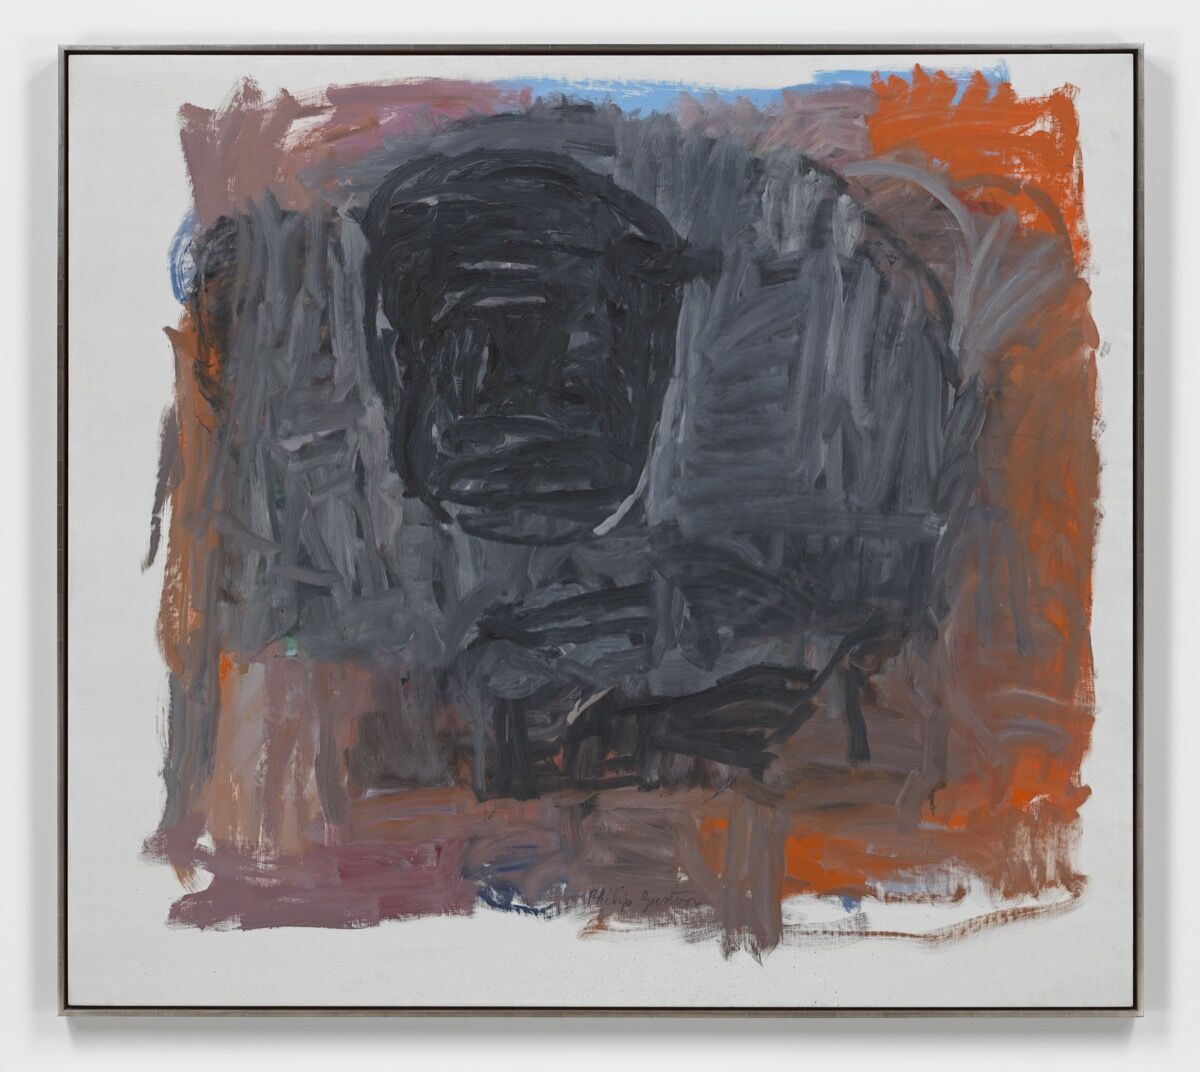 Philip Guston, Painter III , 1963. © The Estate of Philip Guston. Courtesy of the Estate and Hauser & Wirth.